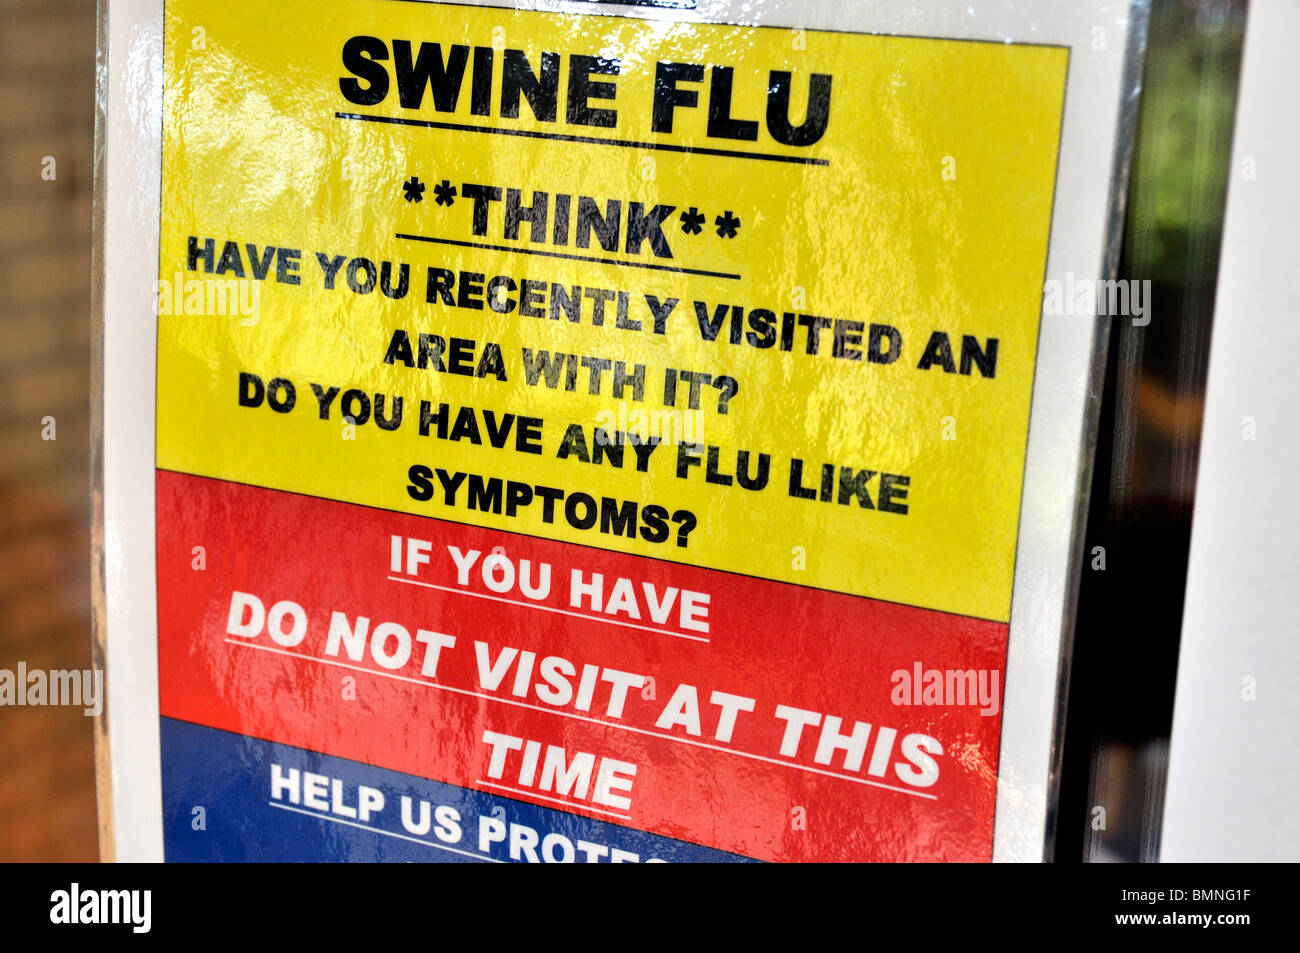 Swine flu warning sign placed on a building entry door. - Stock Image